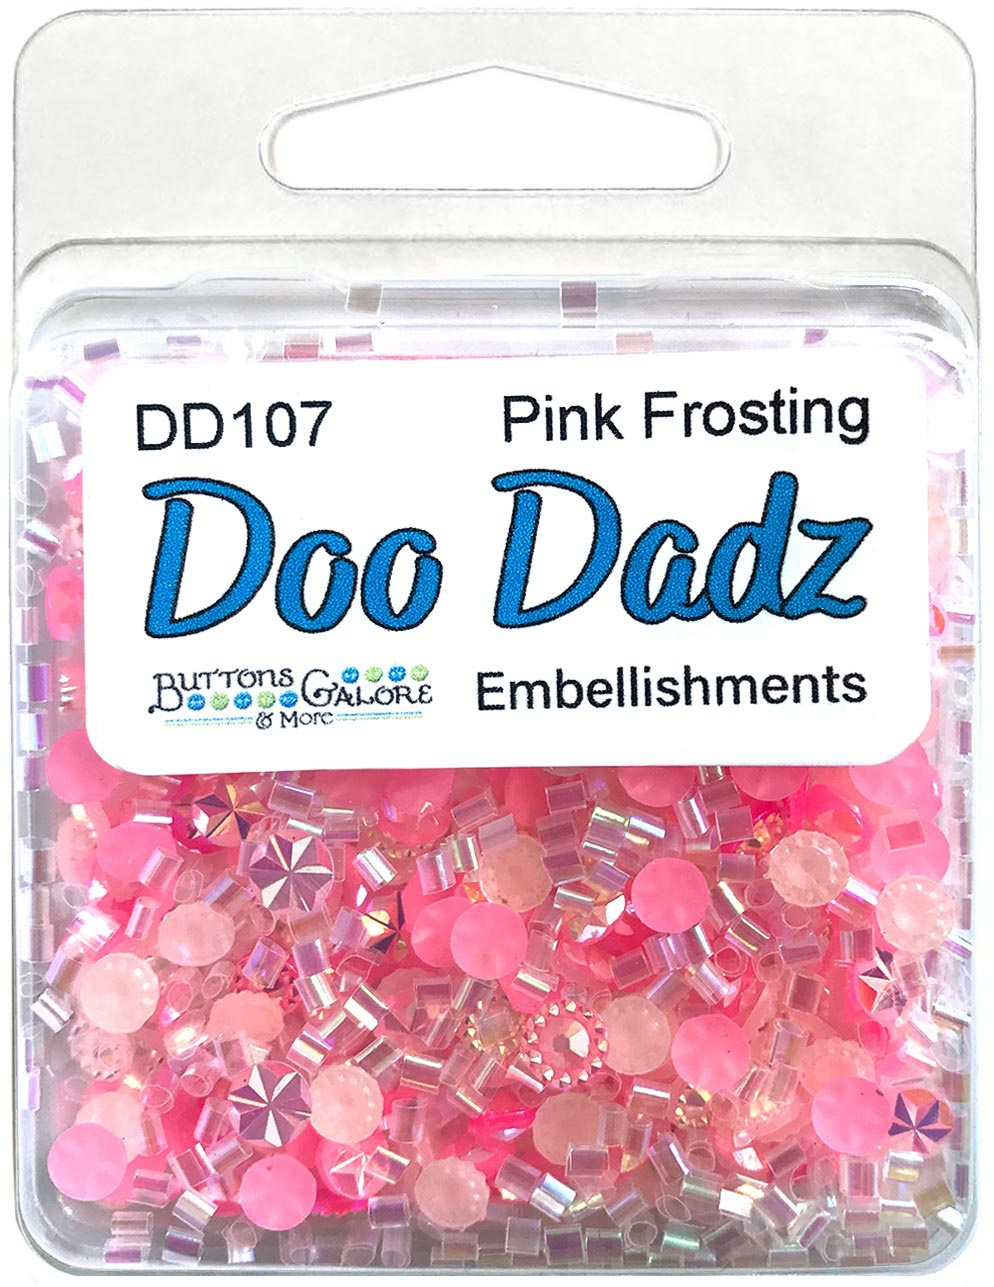 Buttons Galore Doodadz Embellishments-Pink Frosting